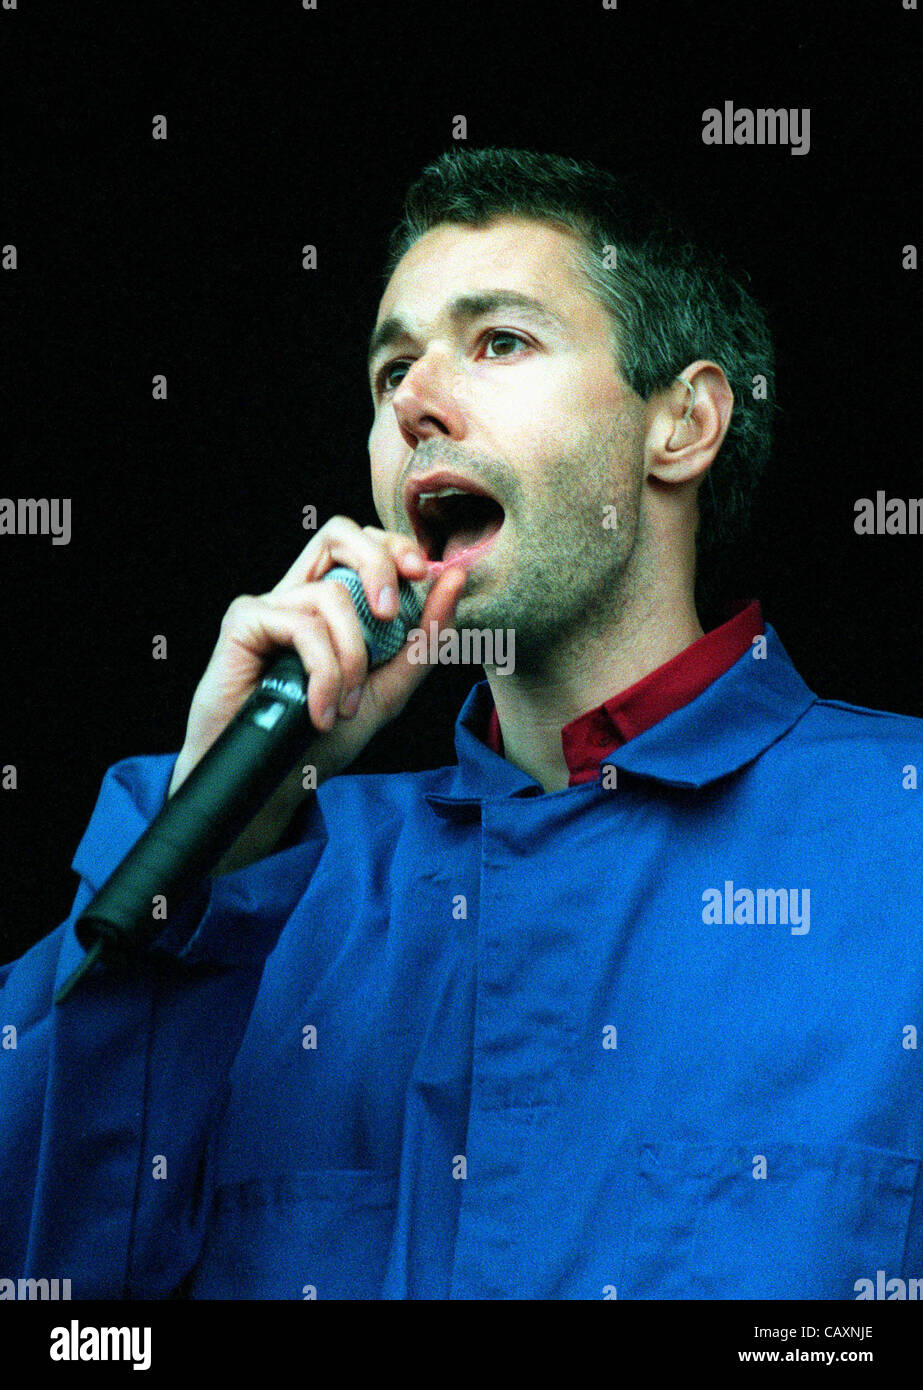 ADAM YAUCH ''MCA''.SINGER ''BEASTIE BOYS''.15/07/1998.N90F32C. Stock Photo